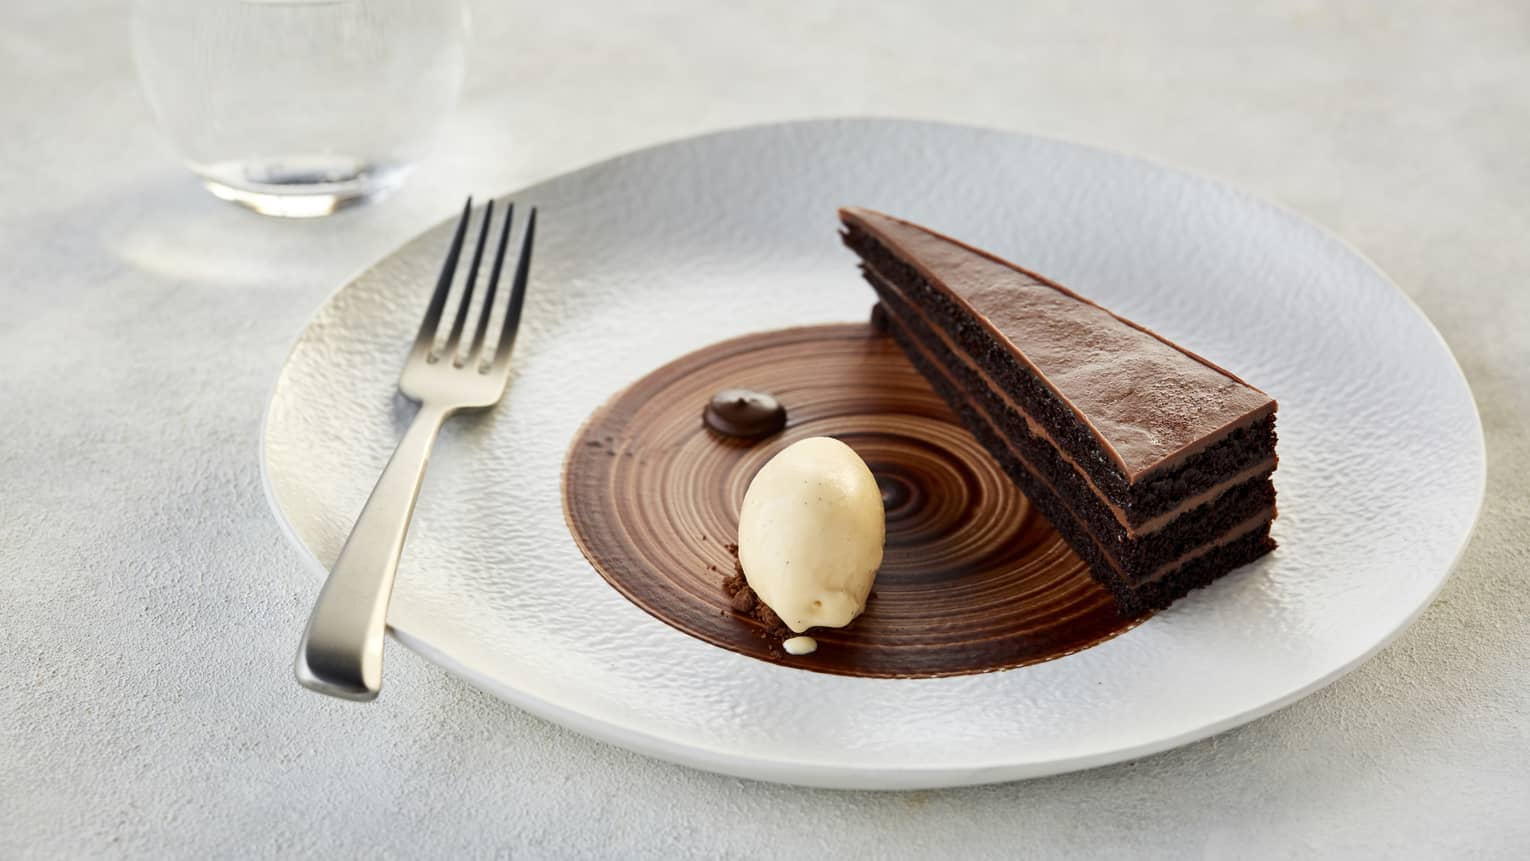 A thin sliced of a layered chocolate ganashe cake garnished with a dallop of cream on a white porcelain plate